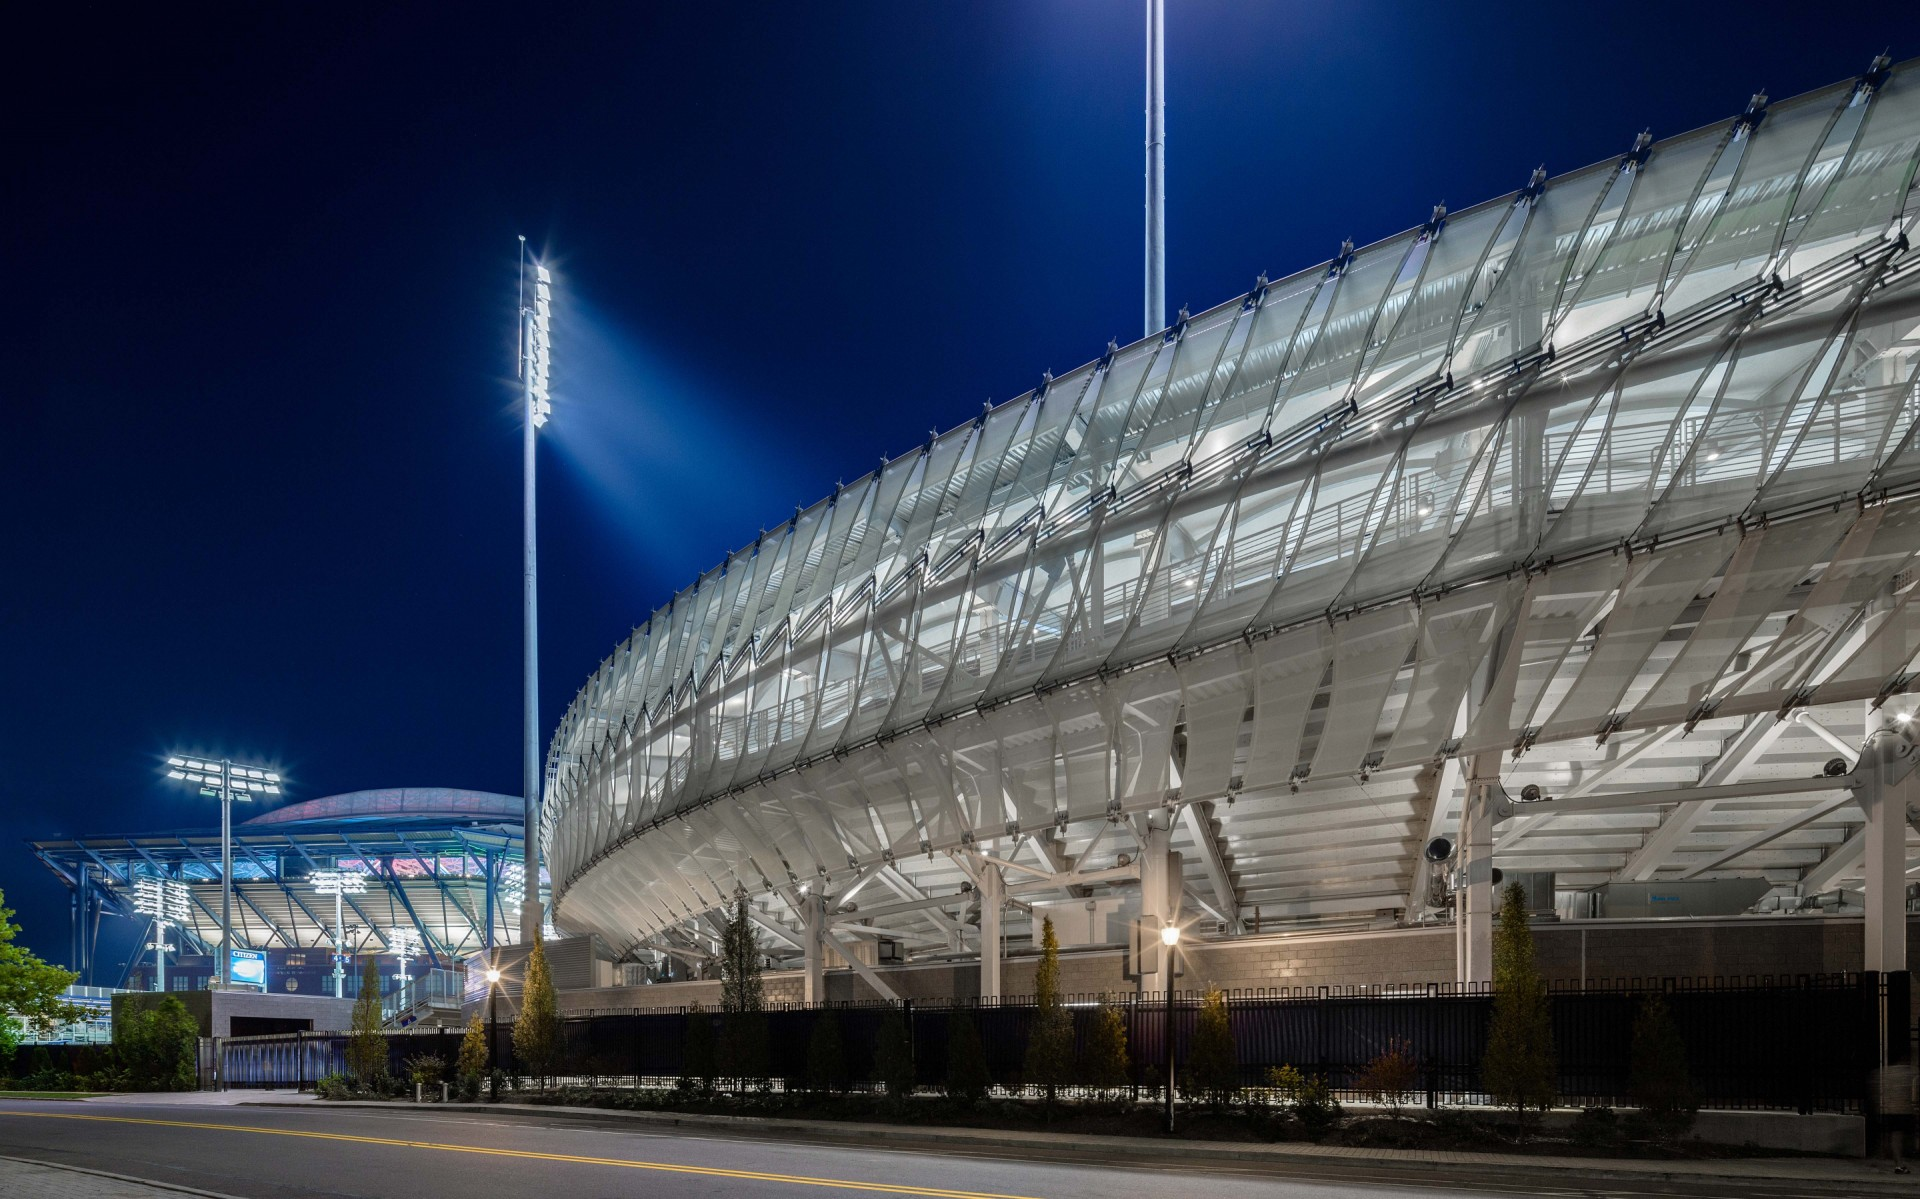 The Lumenbeam fixtures were able to make the panels and canopy float and glow, and to highlight the new stadium as a beacon on the campus. – Rafael Gamo